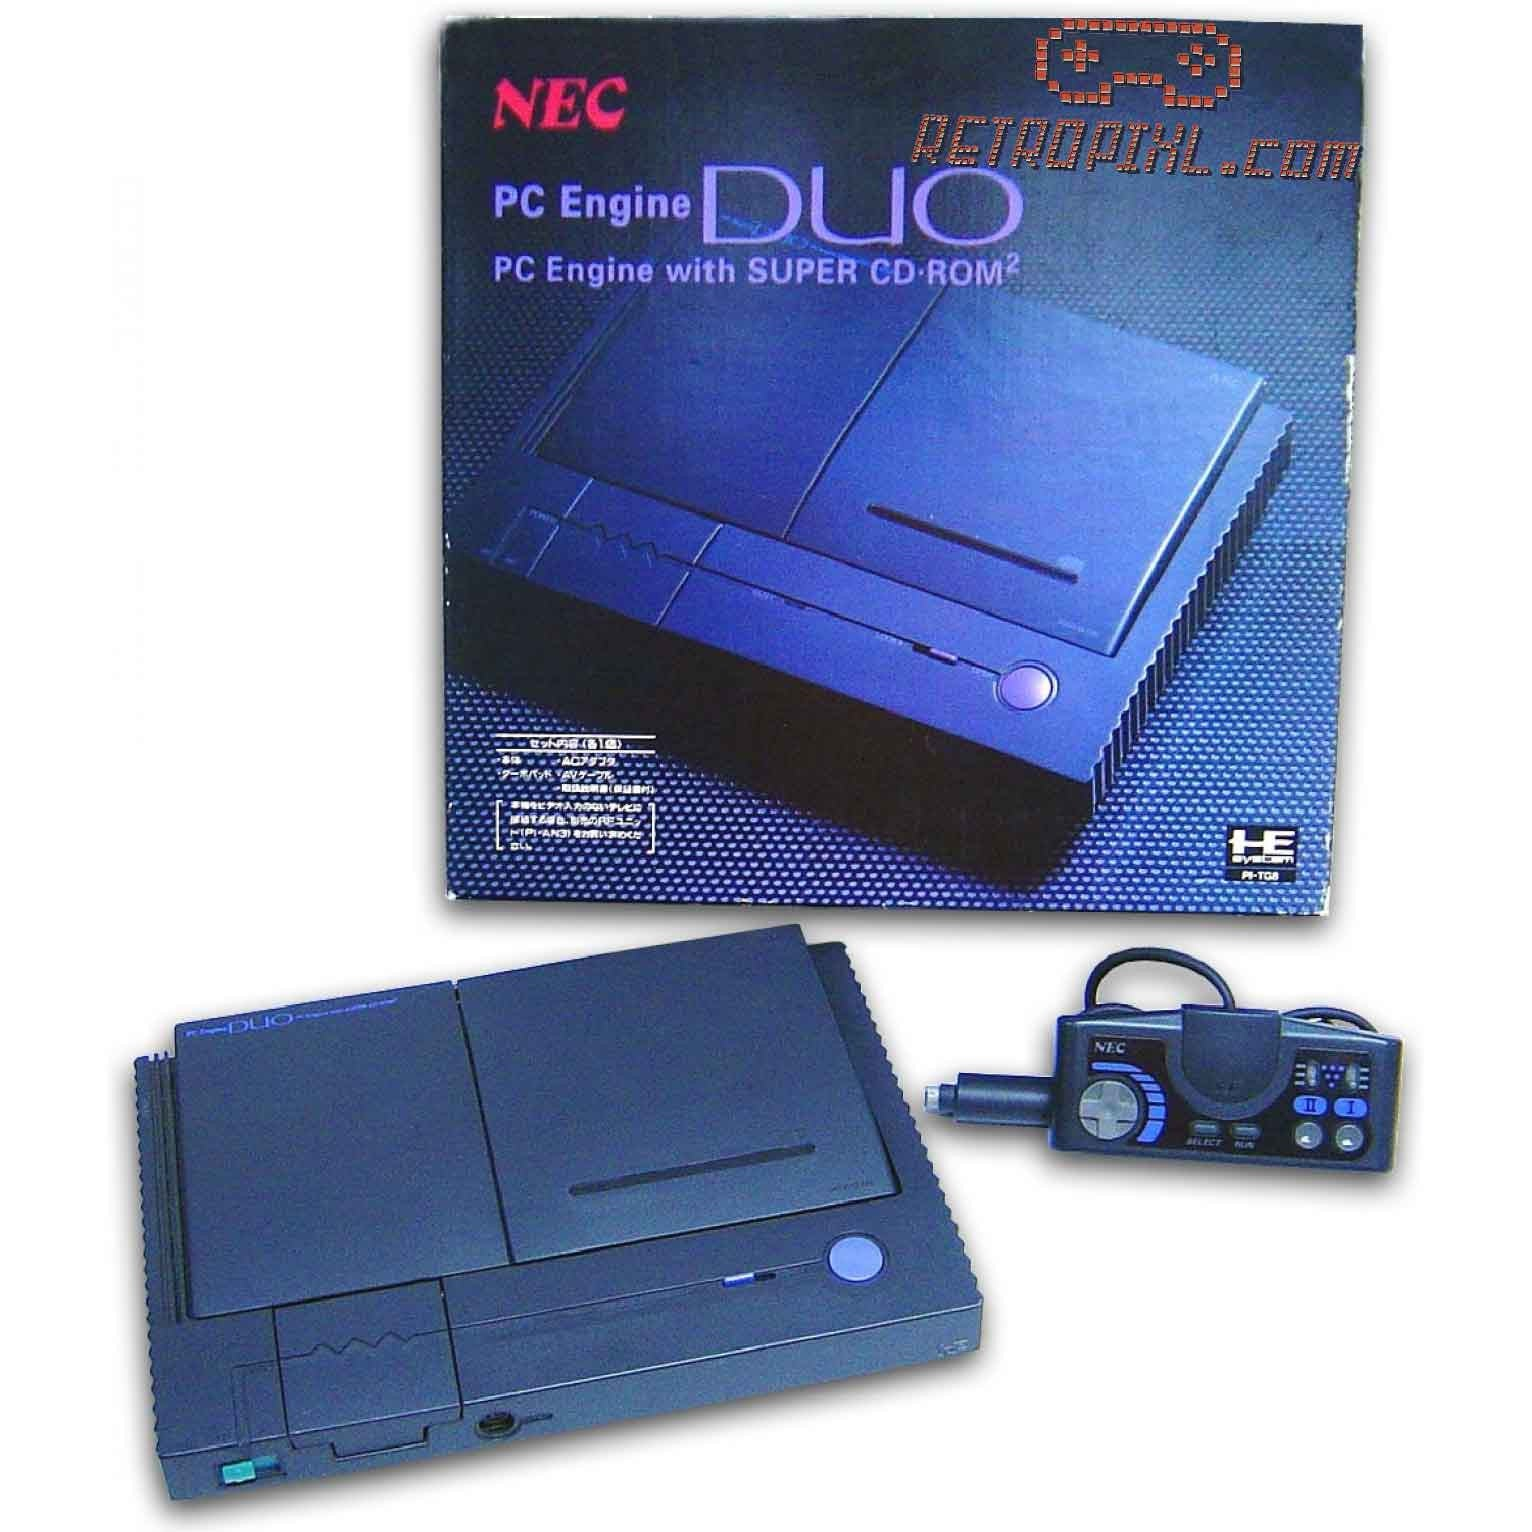 Nec Pc-Engine DUO